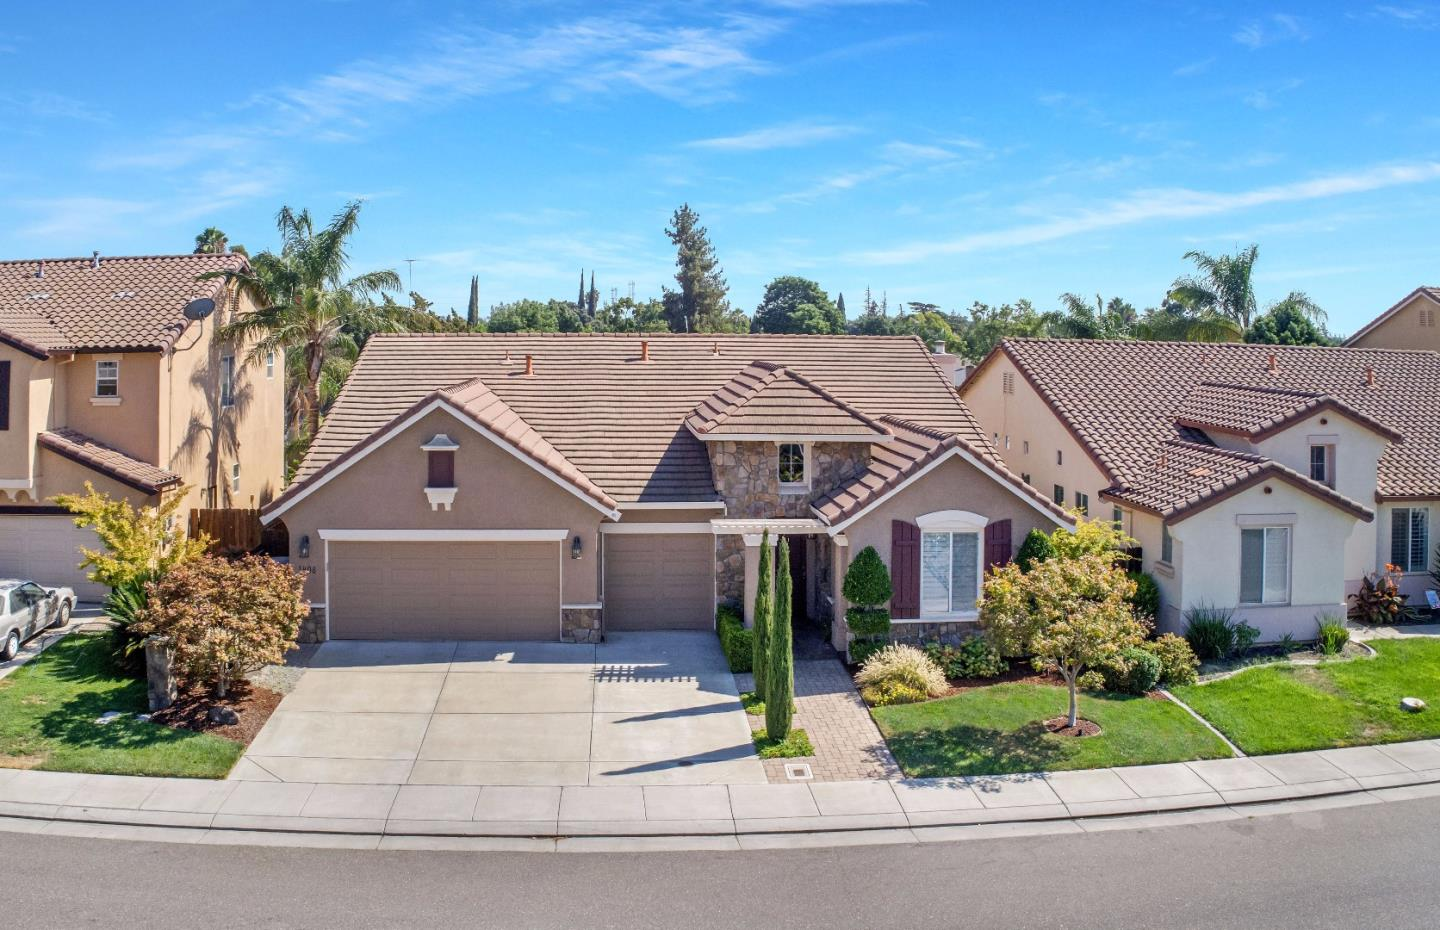 Single Family Home for Sale at 1408 Blakely Lane Modesto, California 95356 United States